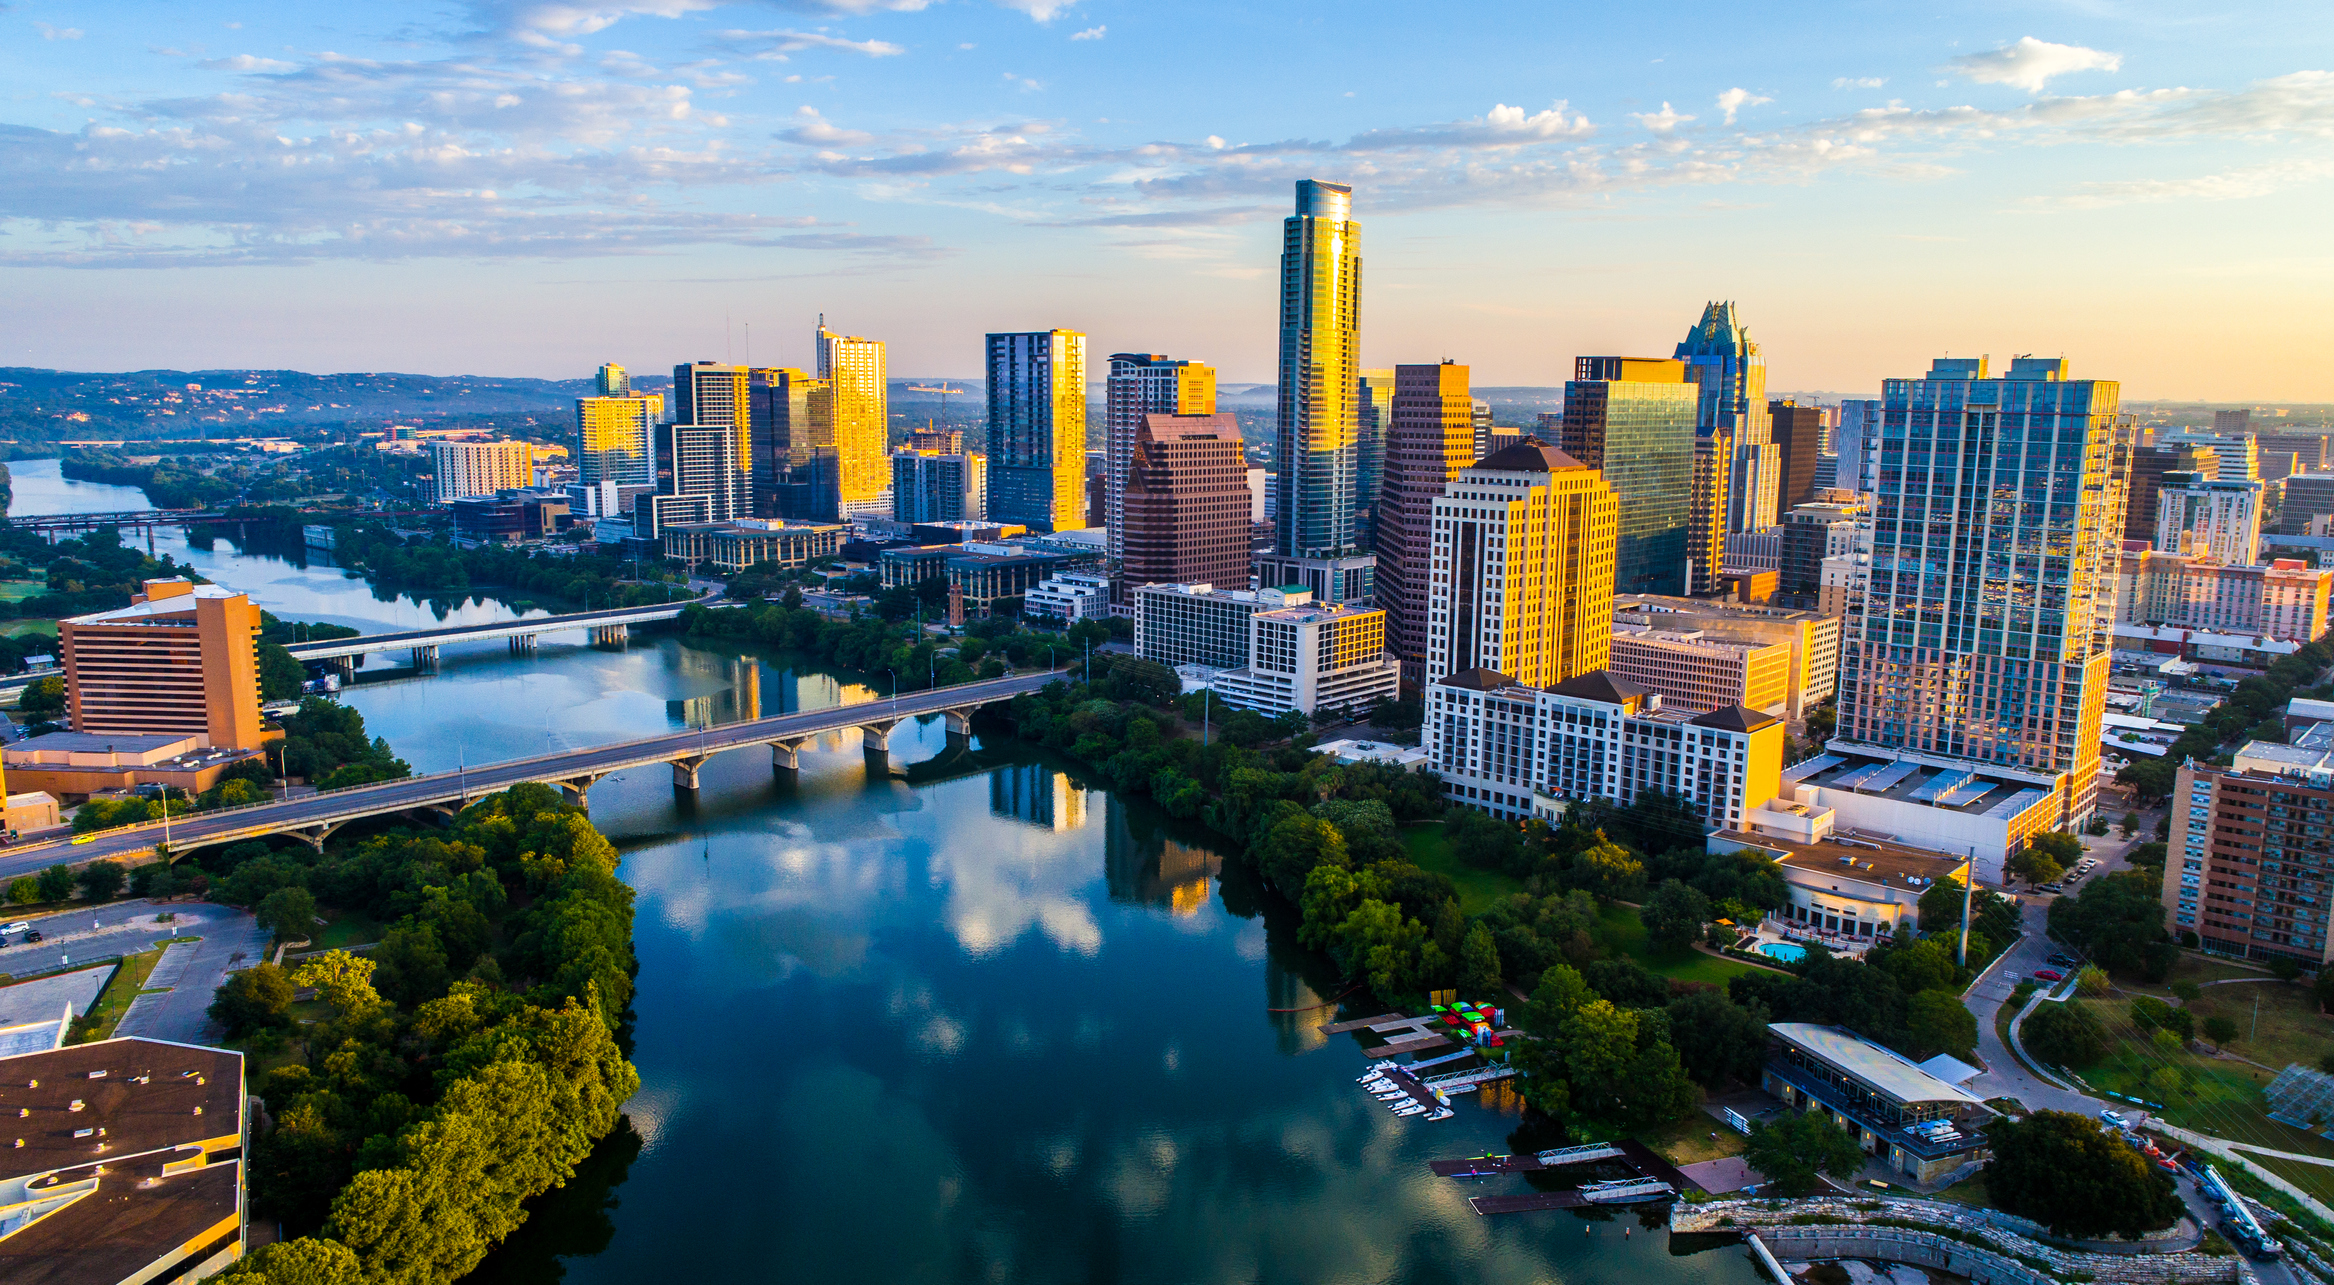 Census Bureau: Austin metro area one of nation's fastest growing in 2018